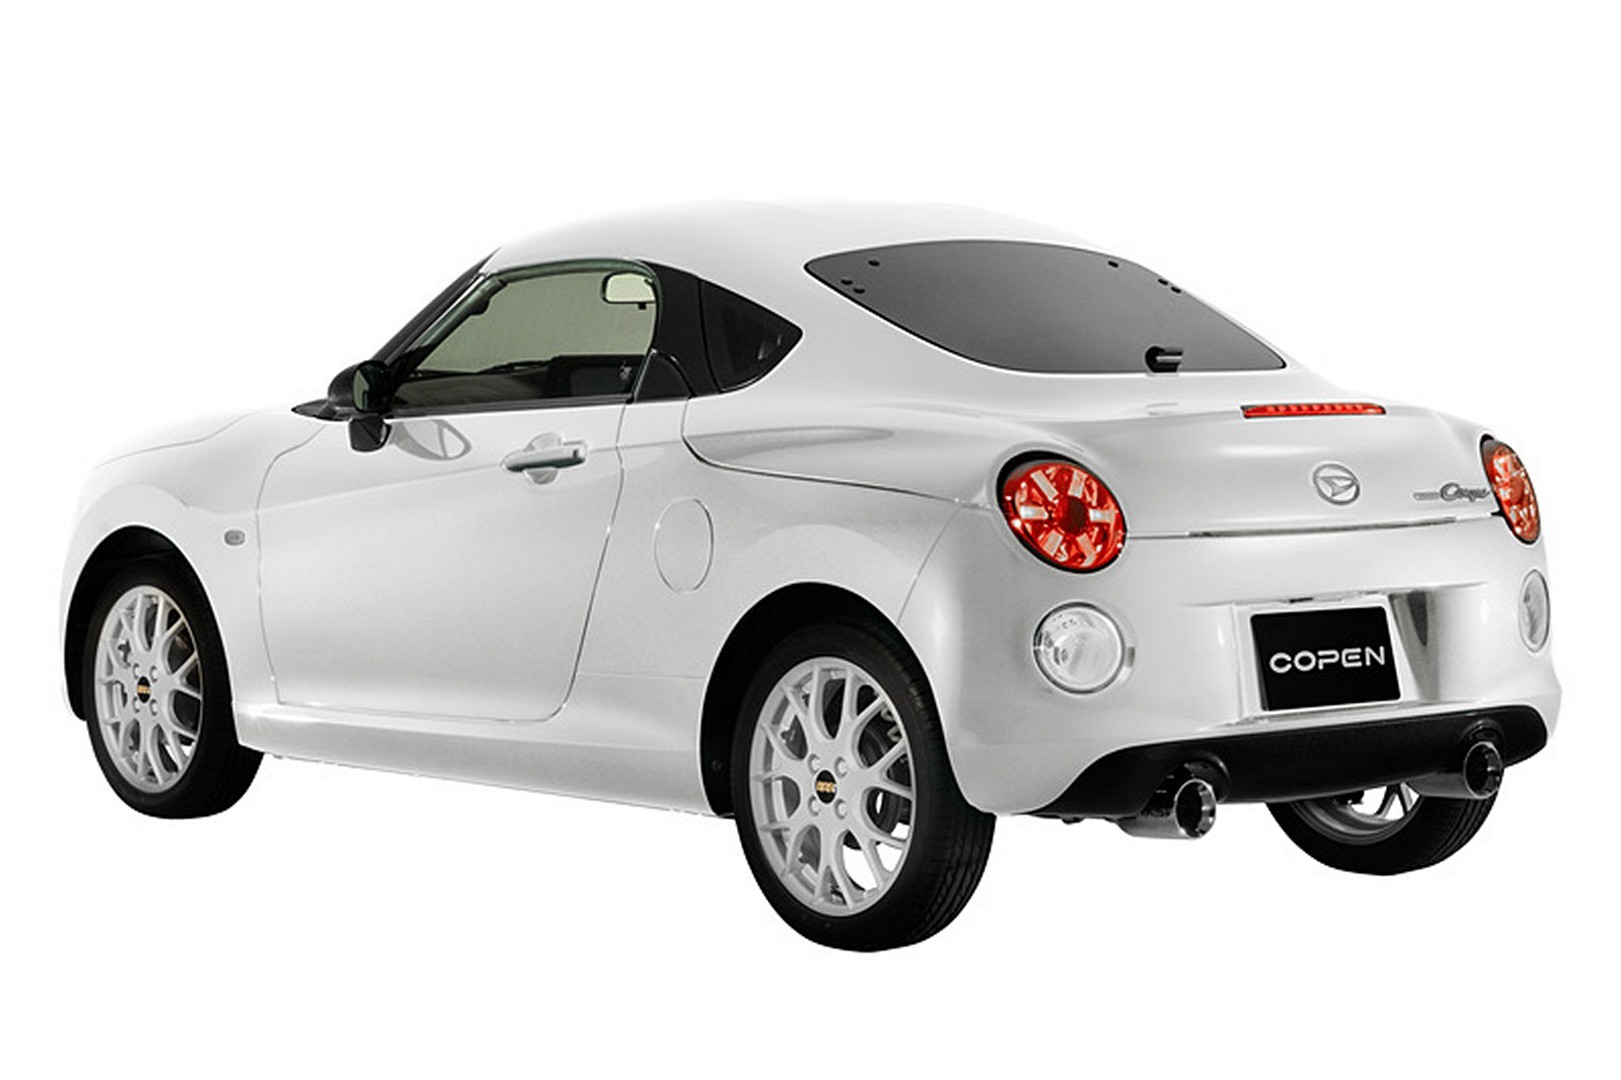 2019 Daihatsu Copen Coupe Looks Like A Budget Alfa 4c Or